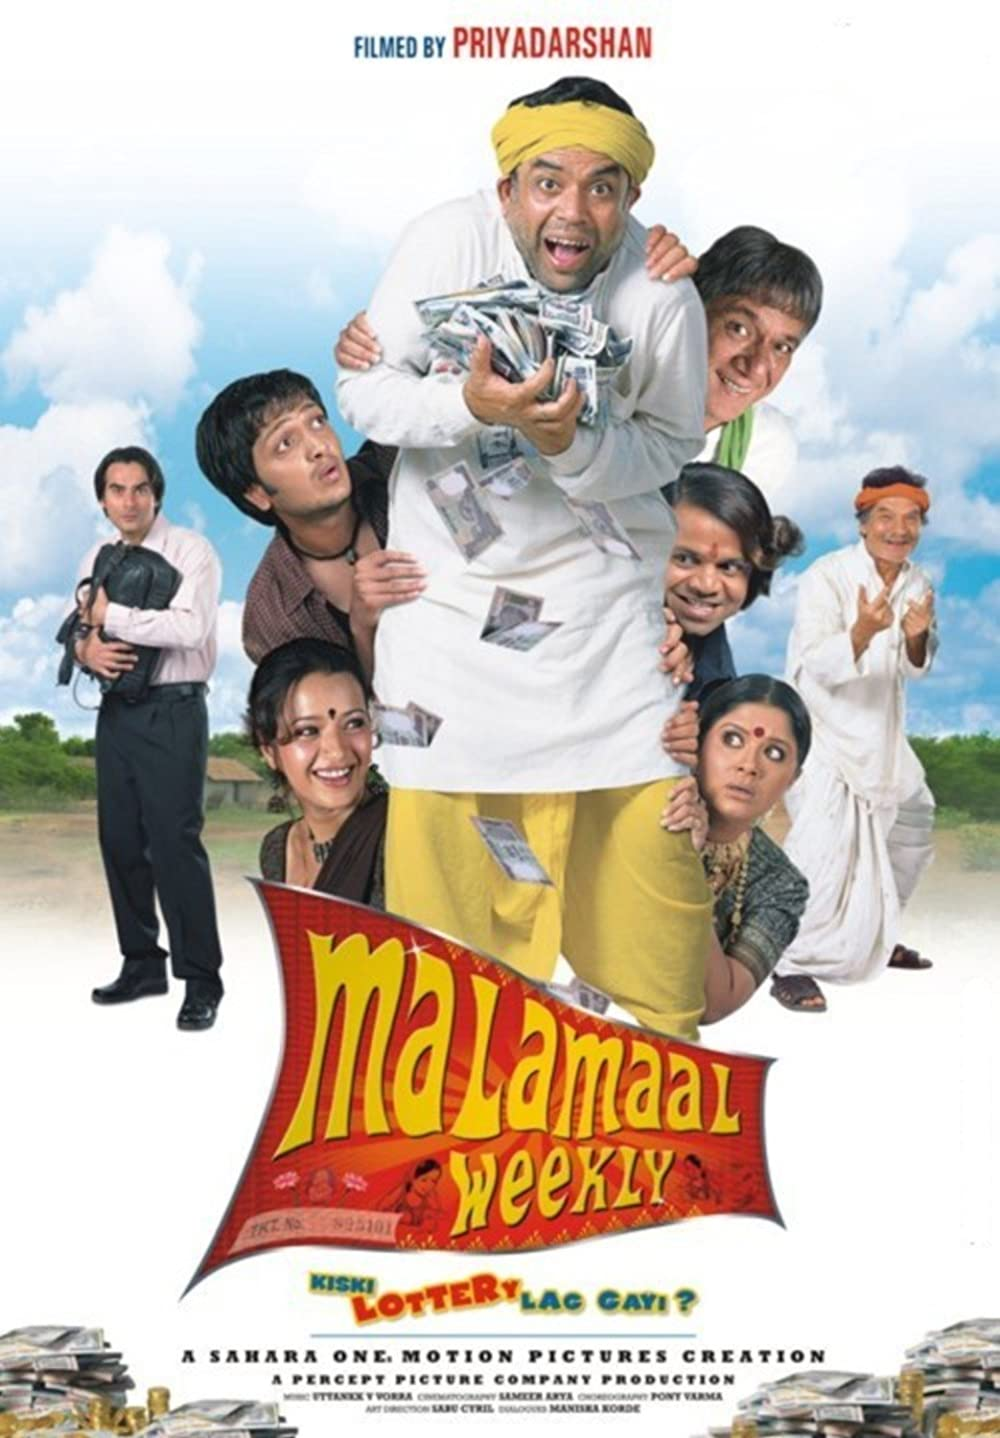 Malamaal Weekly 2006 Hindi Full Movie 1080p HDRip 1.9GB Download